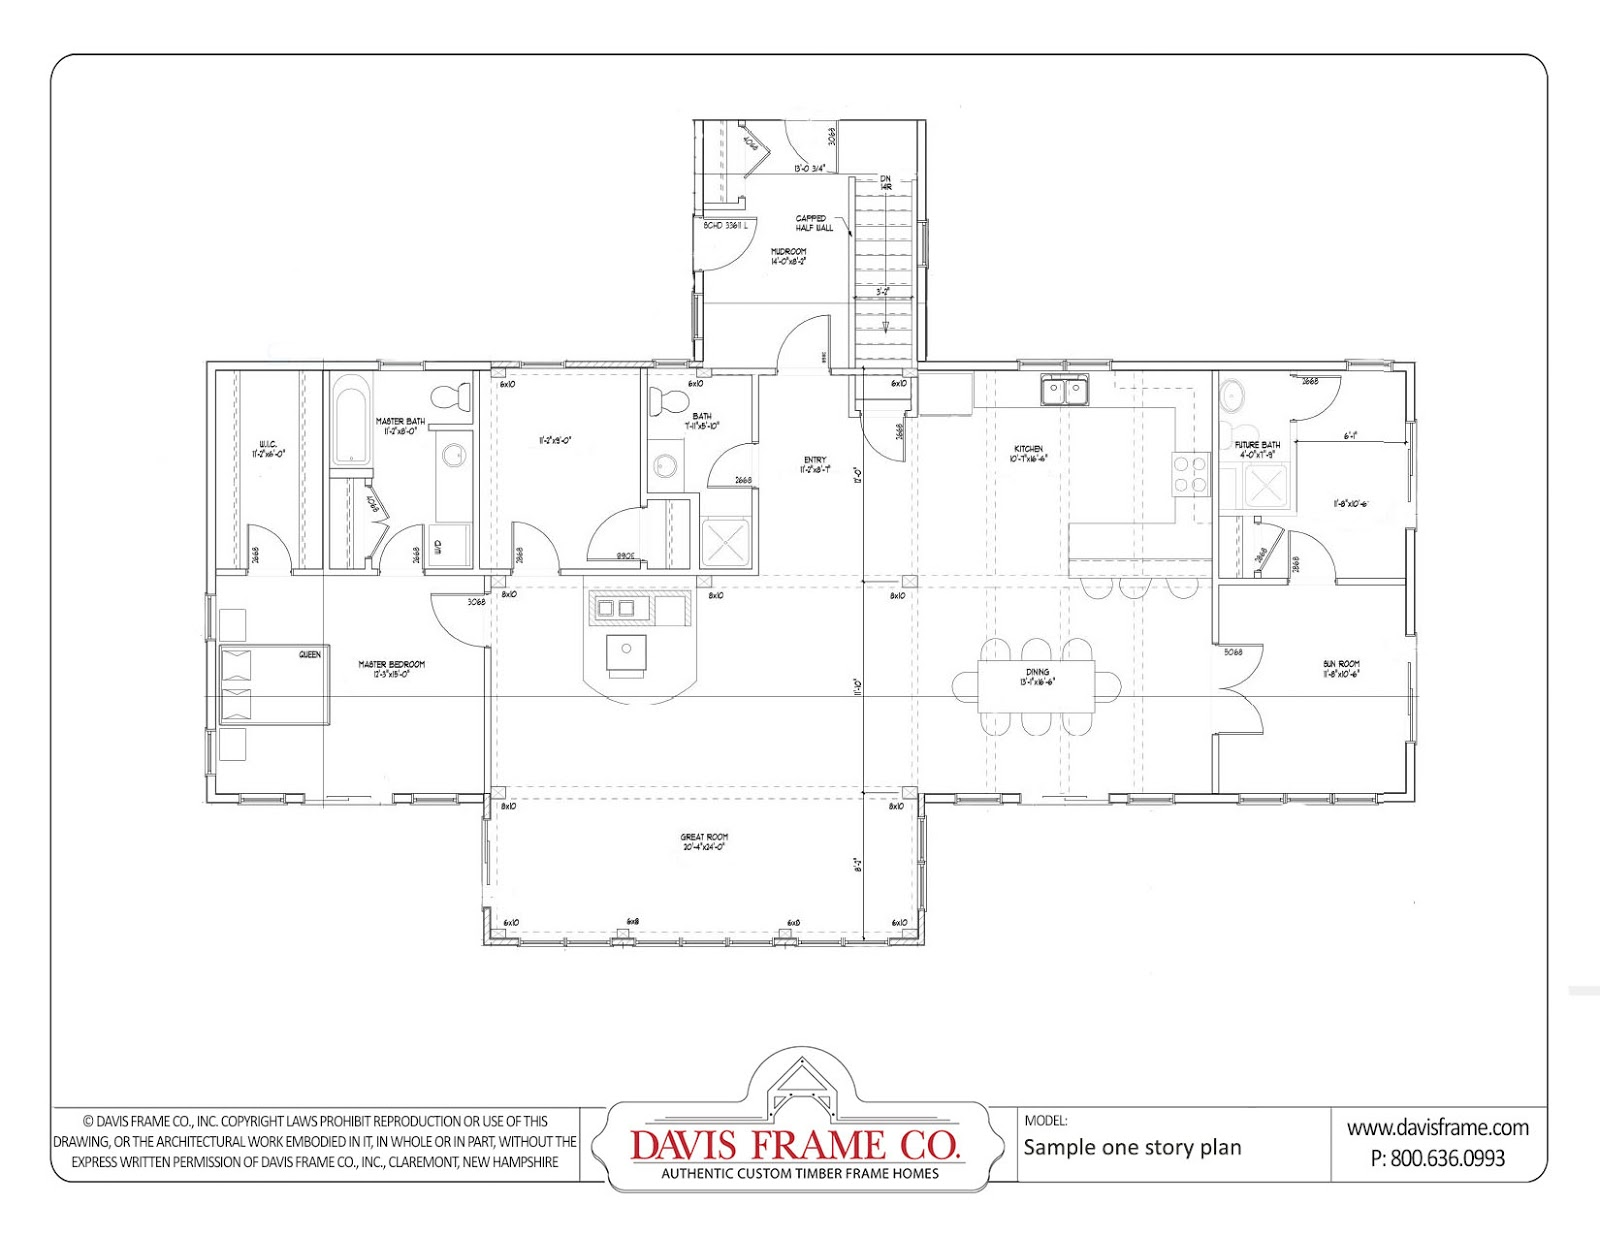 2 story timber frame house floor plans timber frame for Timber frame ranch home plans